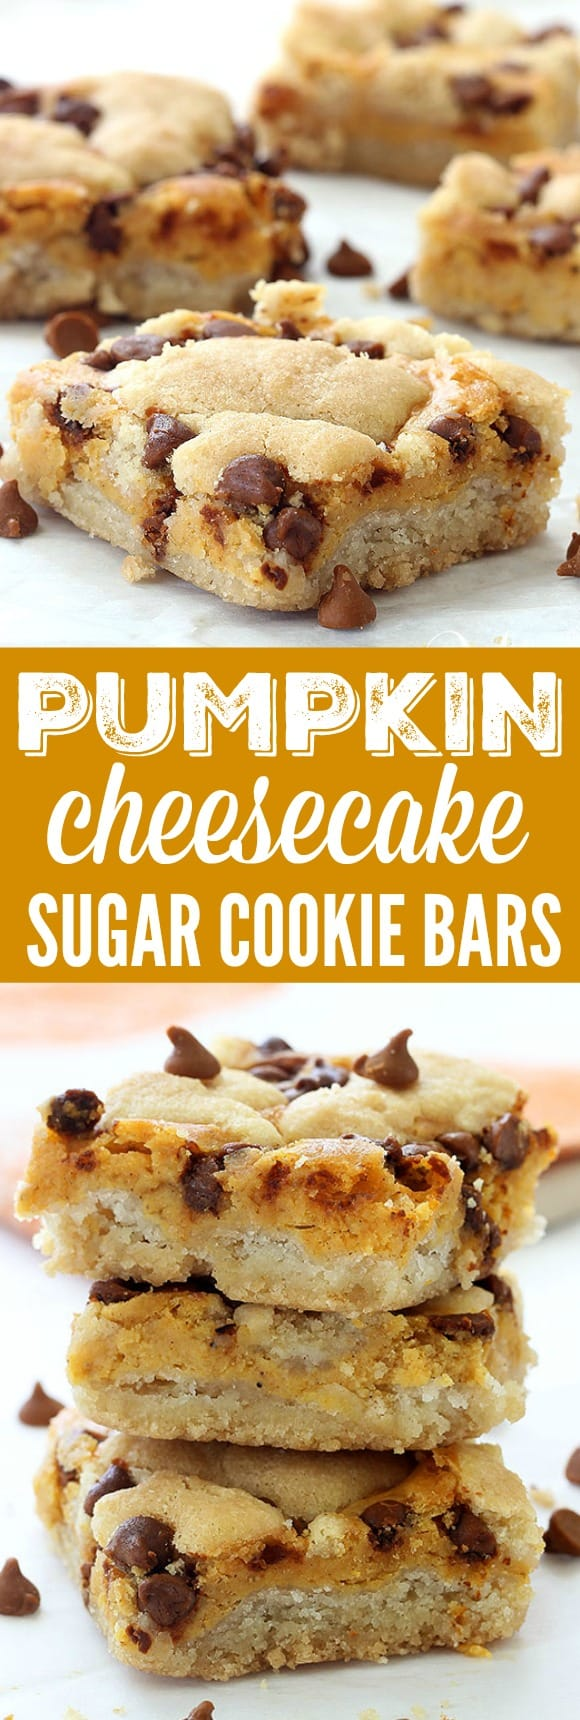 I have made these Pumpkin Cheesecake Sugar Cookie Bars SO many times for friends and family! I get asked for the recipe constantly!